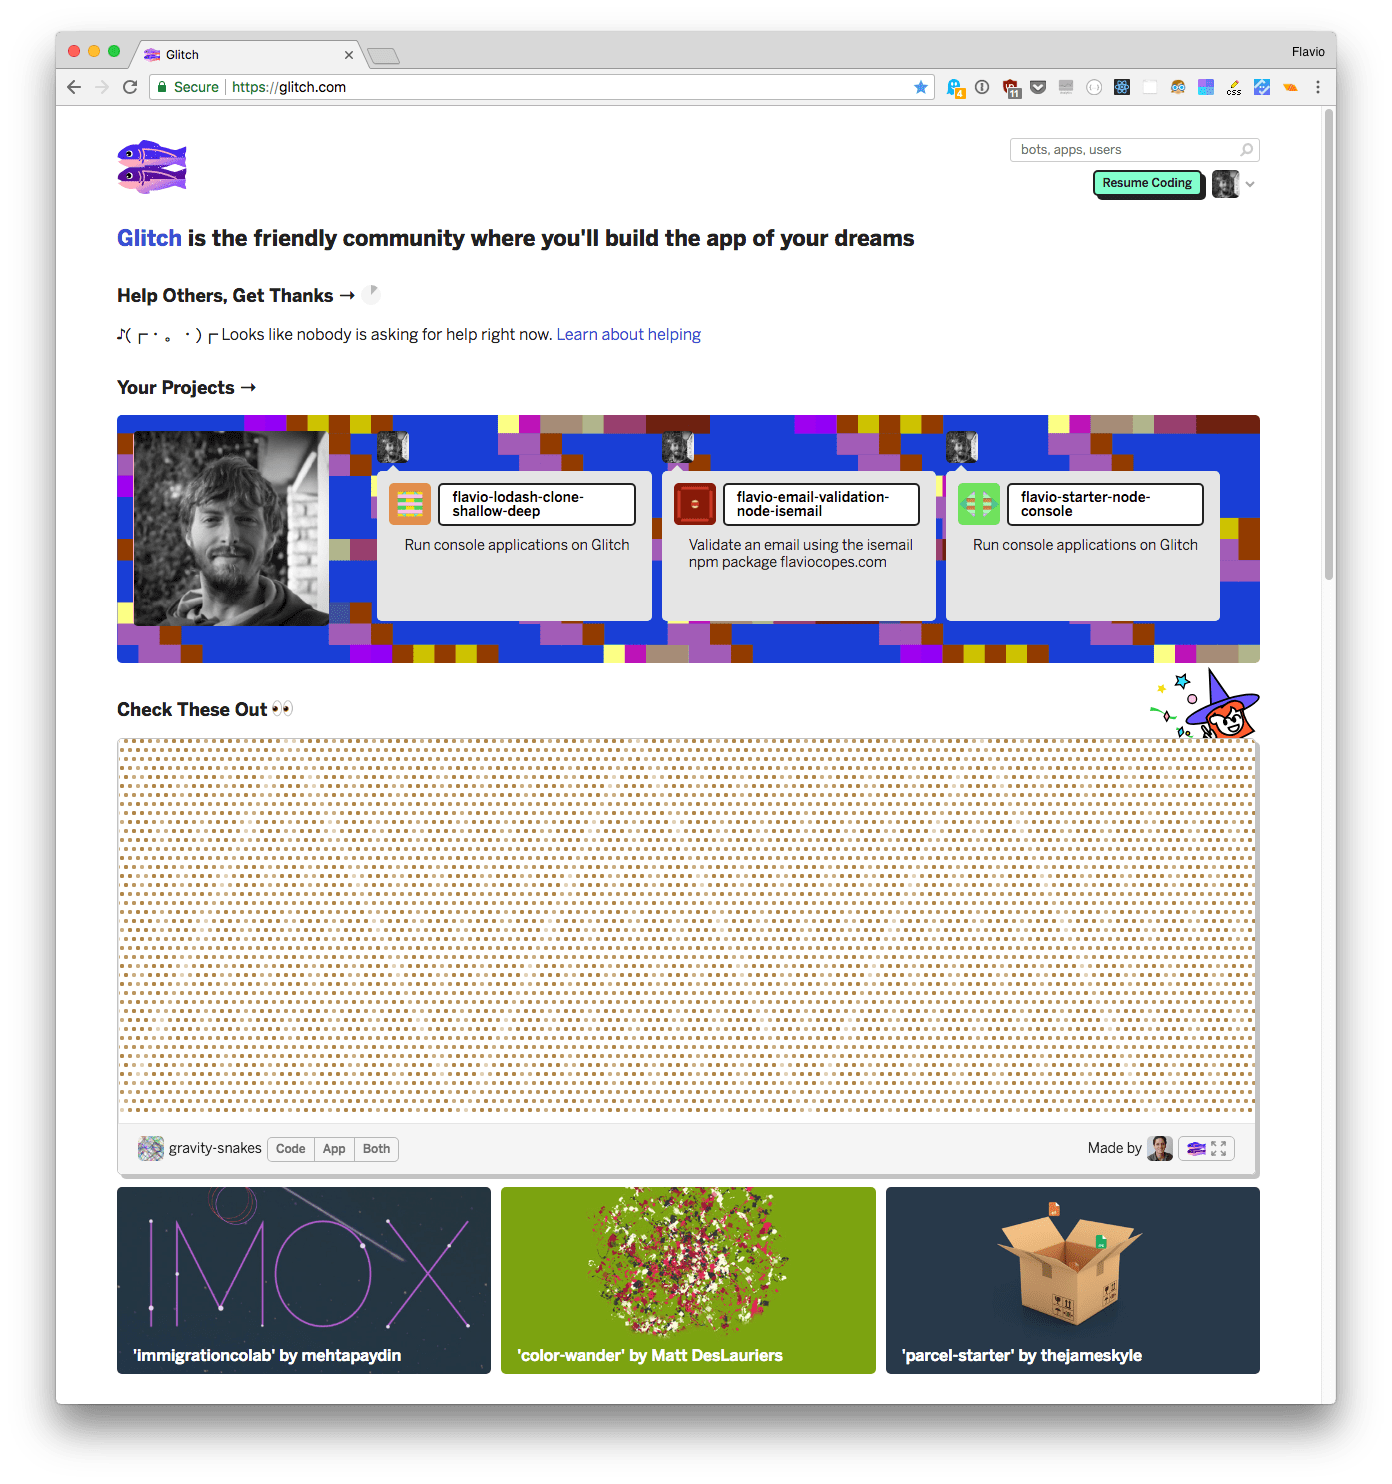 The home page once logged in